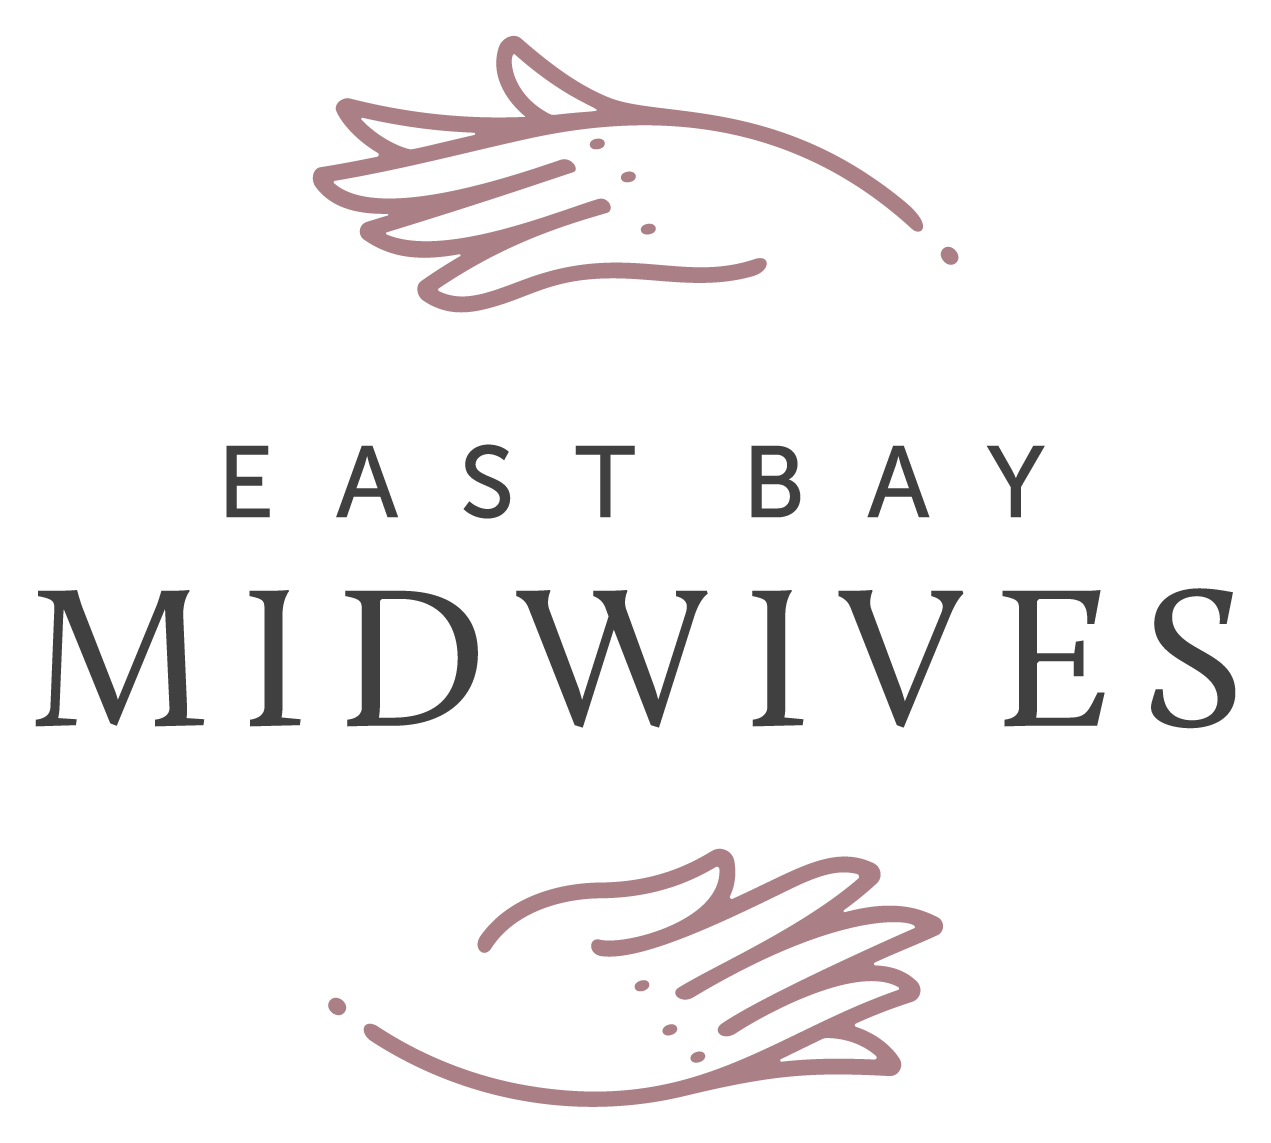 East Bay Midwives - Home Birth | Hospital Birth | Lactation